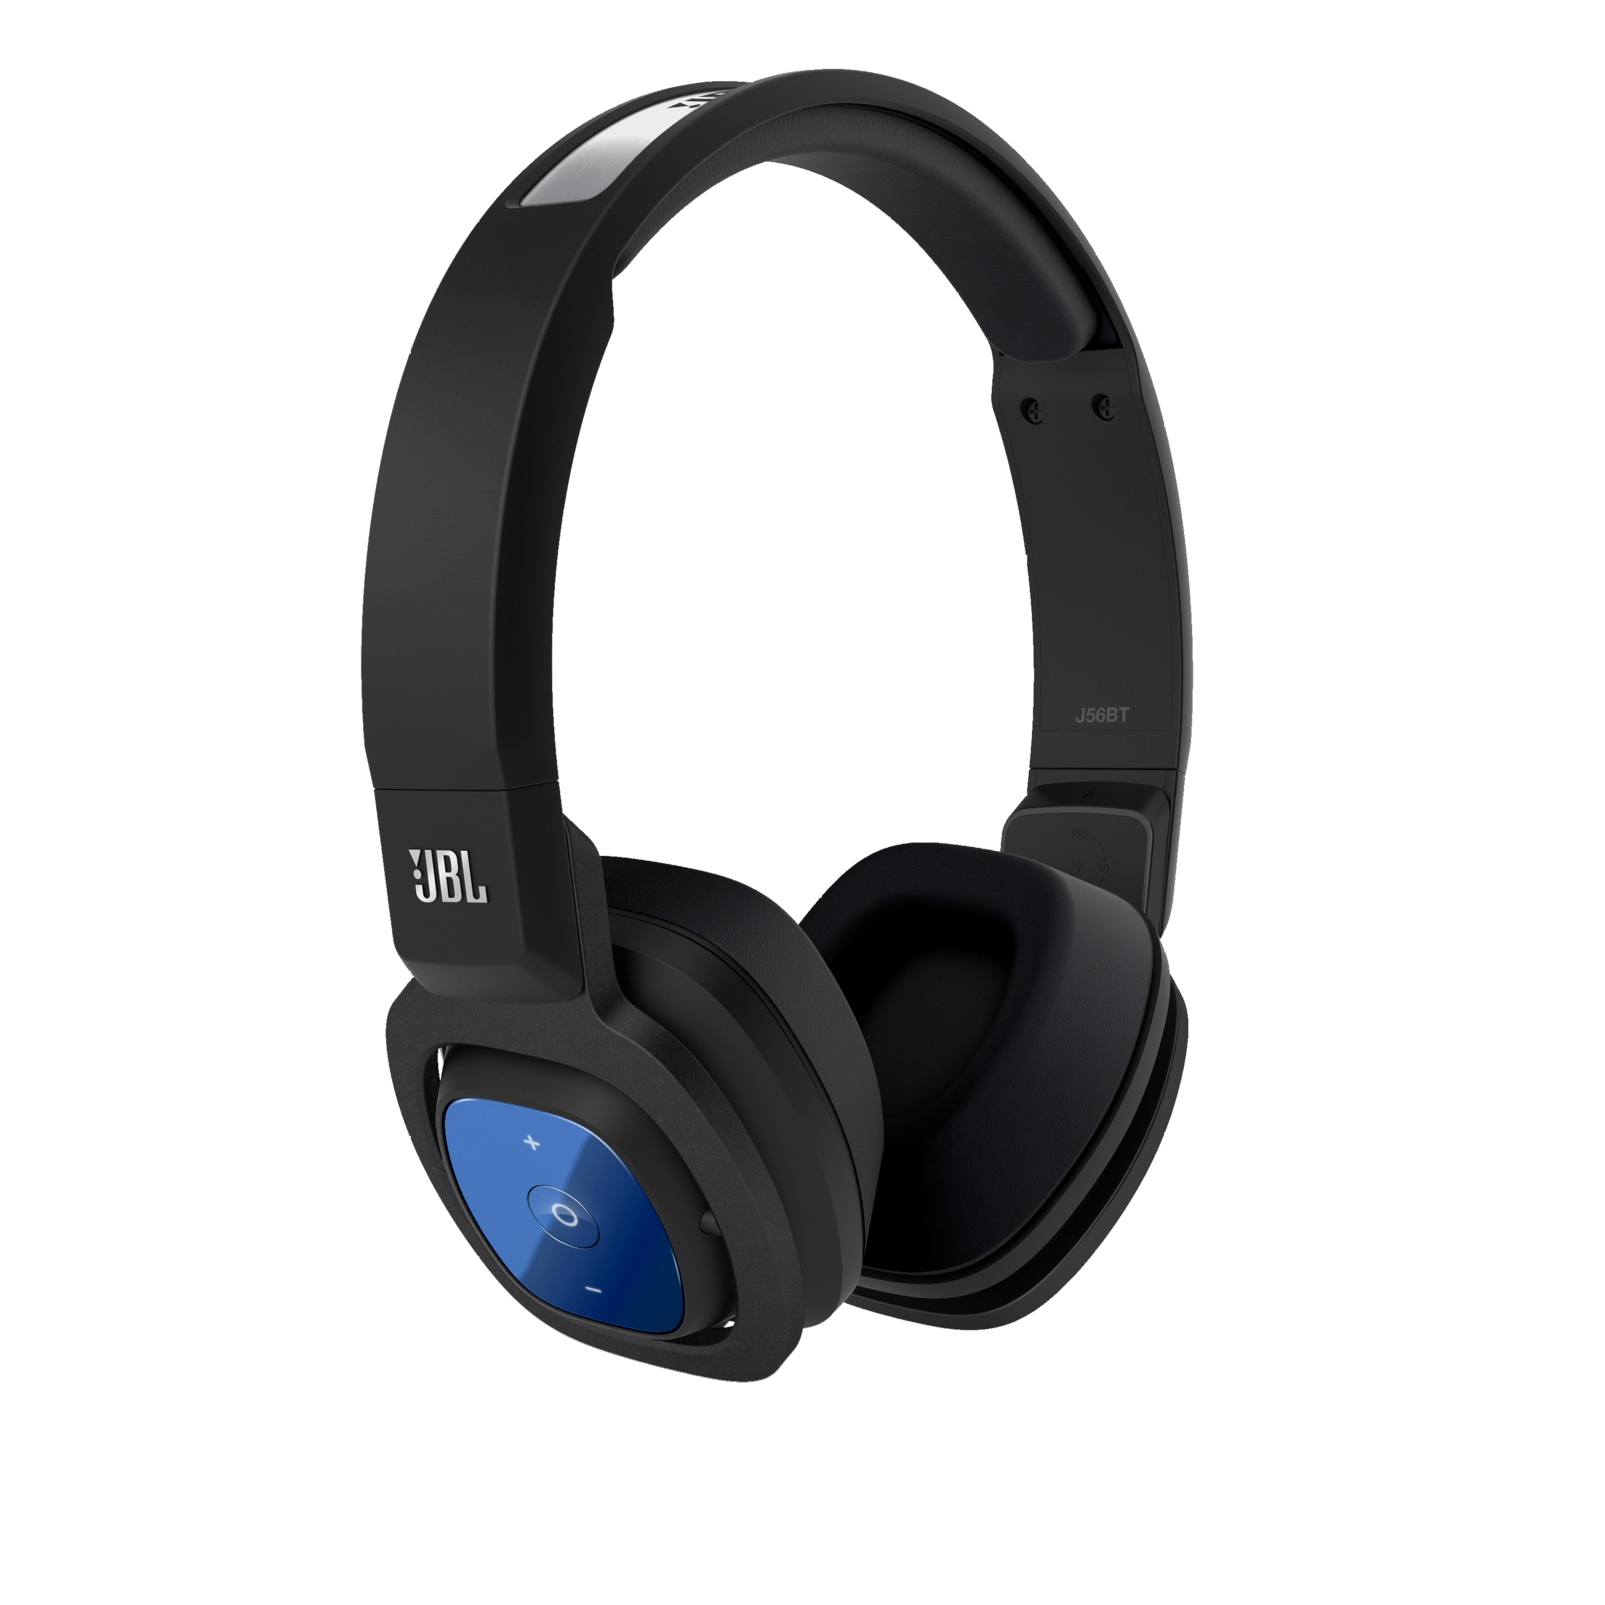 JBL BLUETOOTH WIRELESS ON EAR STEREO HEADPHONE - BLACK - J56BT BLK